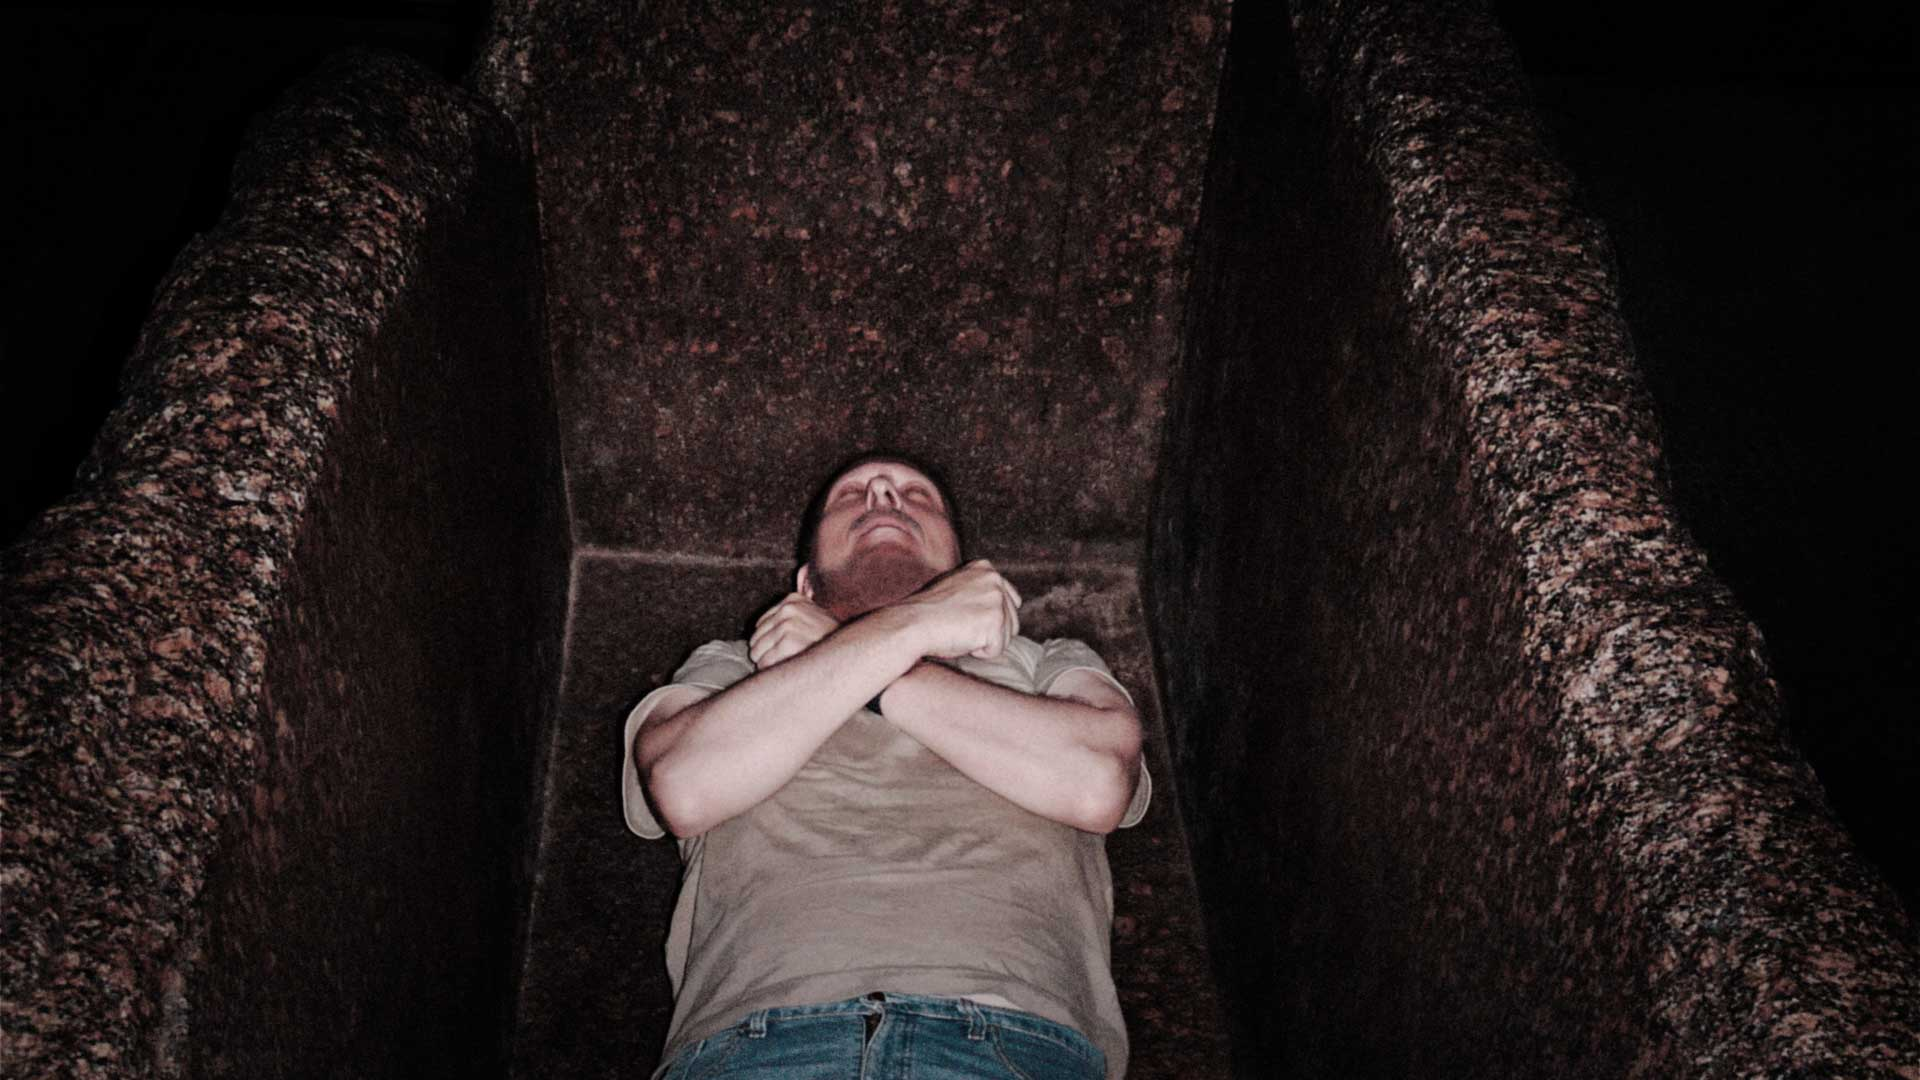 Gregor Spörri meditates during his overnight stay in the pyramid of Cheops in the Royal Chamber sarcophagus (1988).